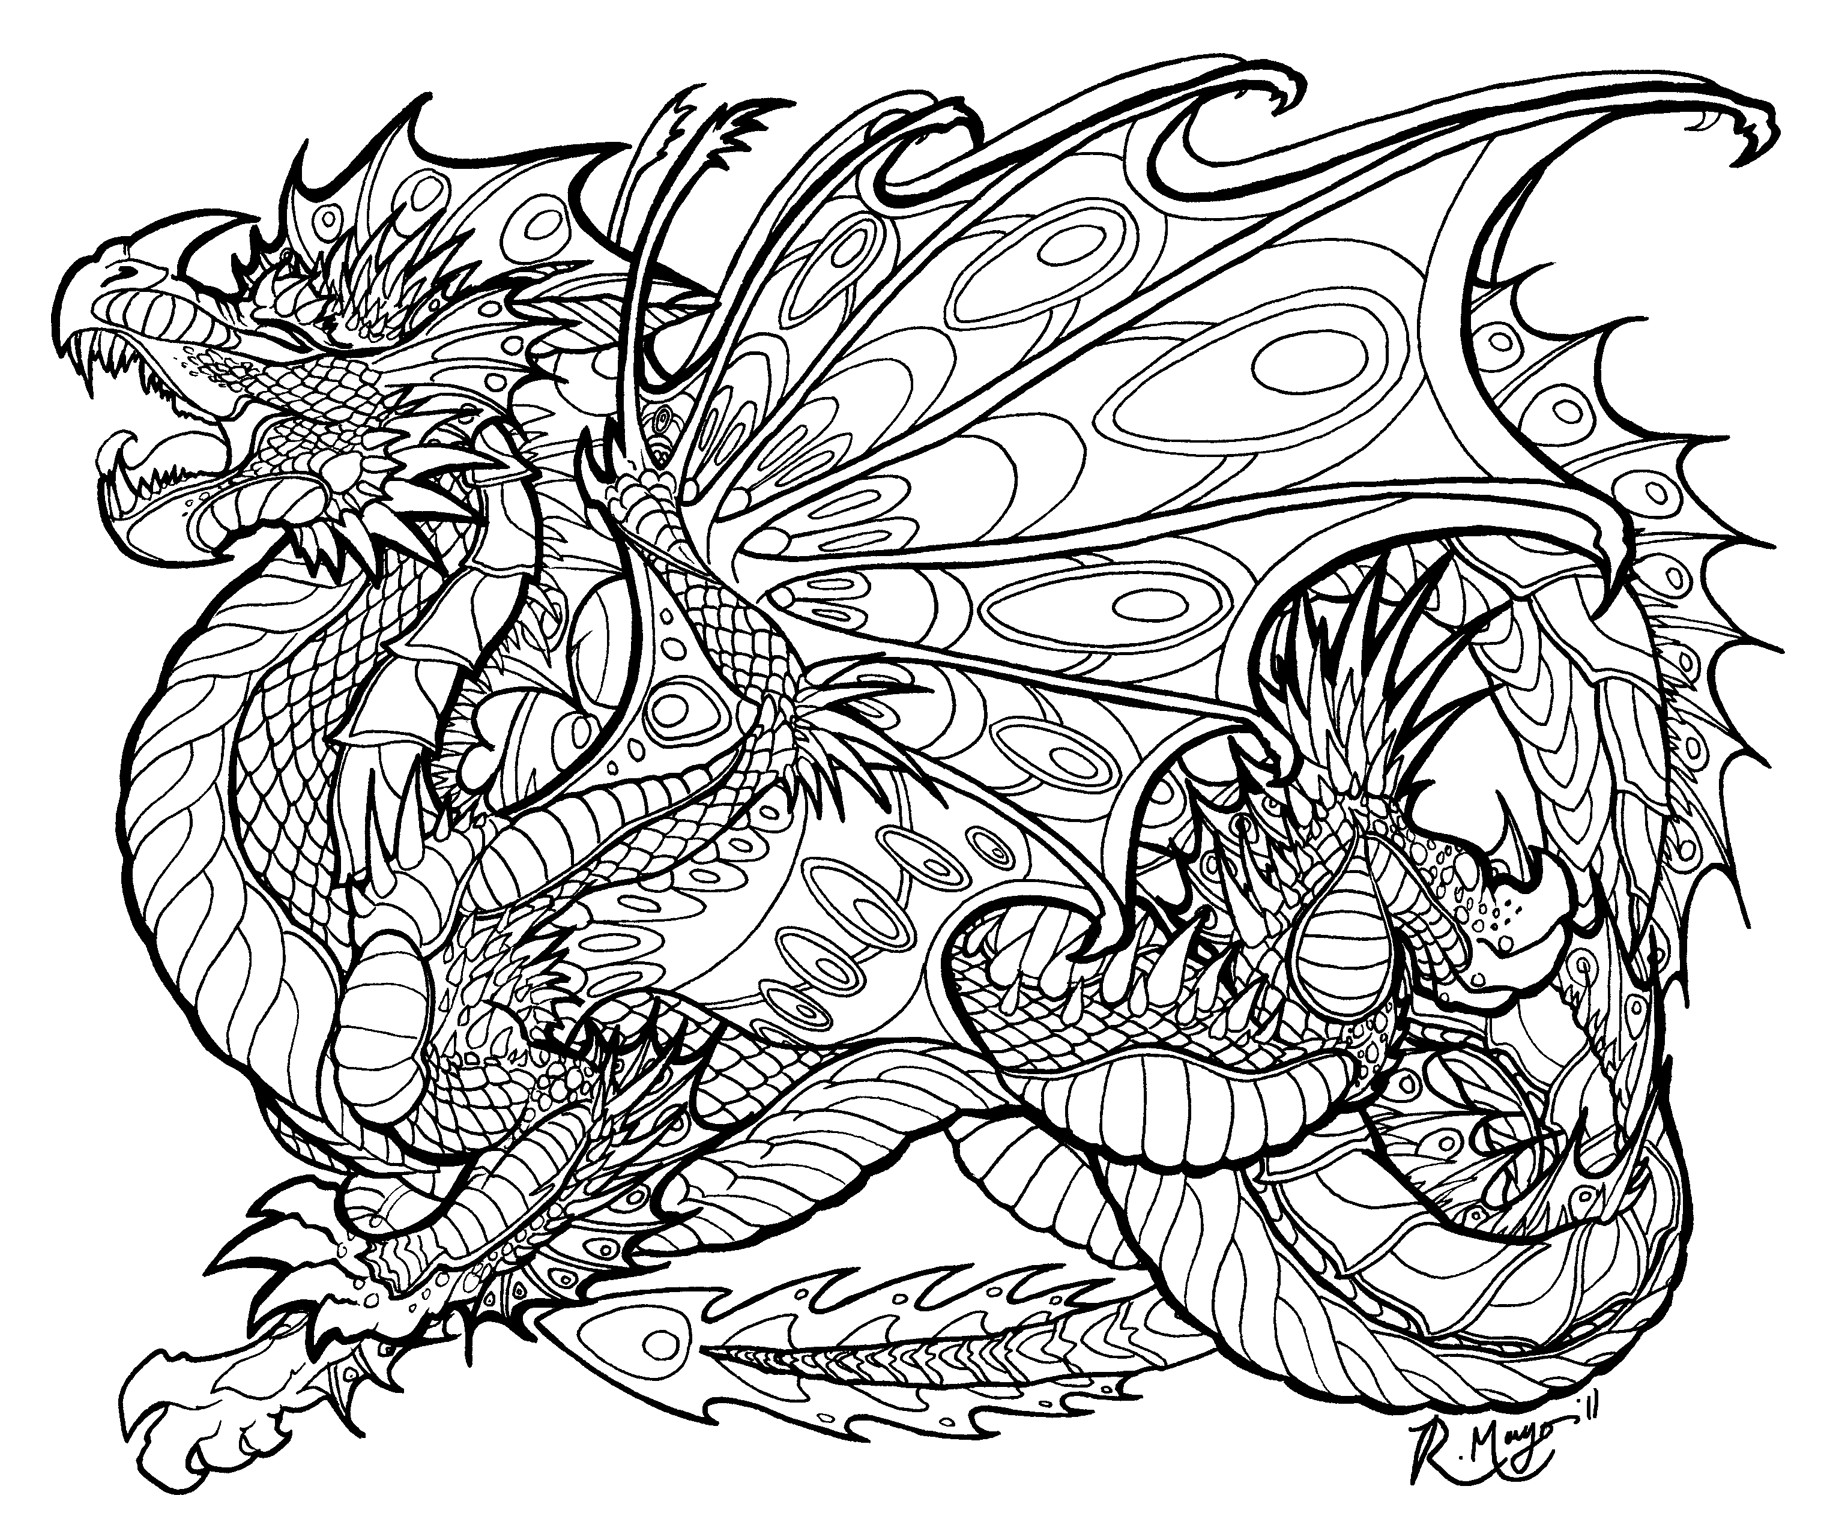 Adult Coloring Book Dragon  Malachite Sentinel lineart by rachaelm5viantart on